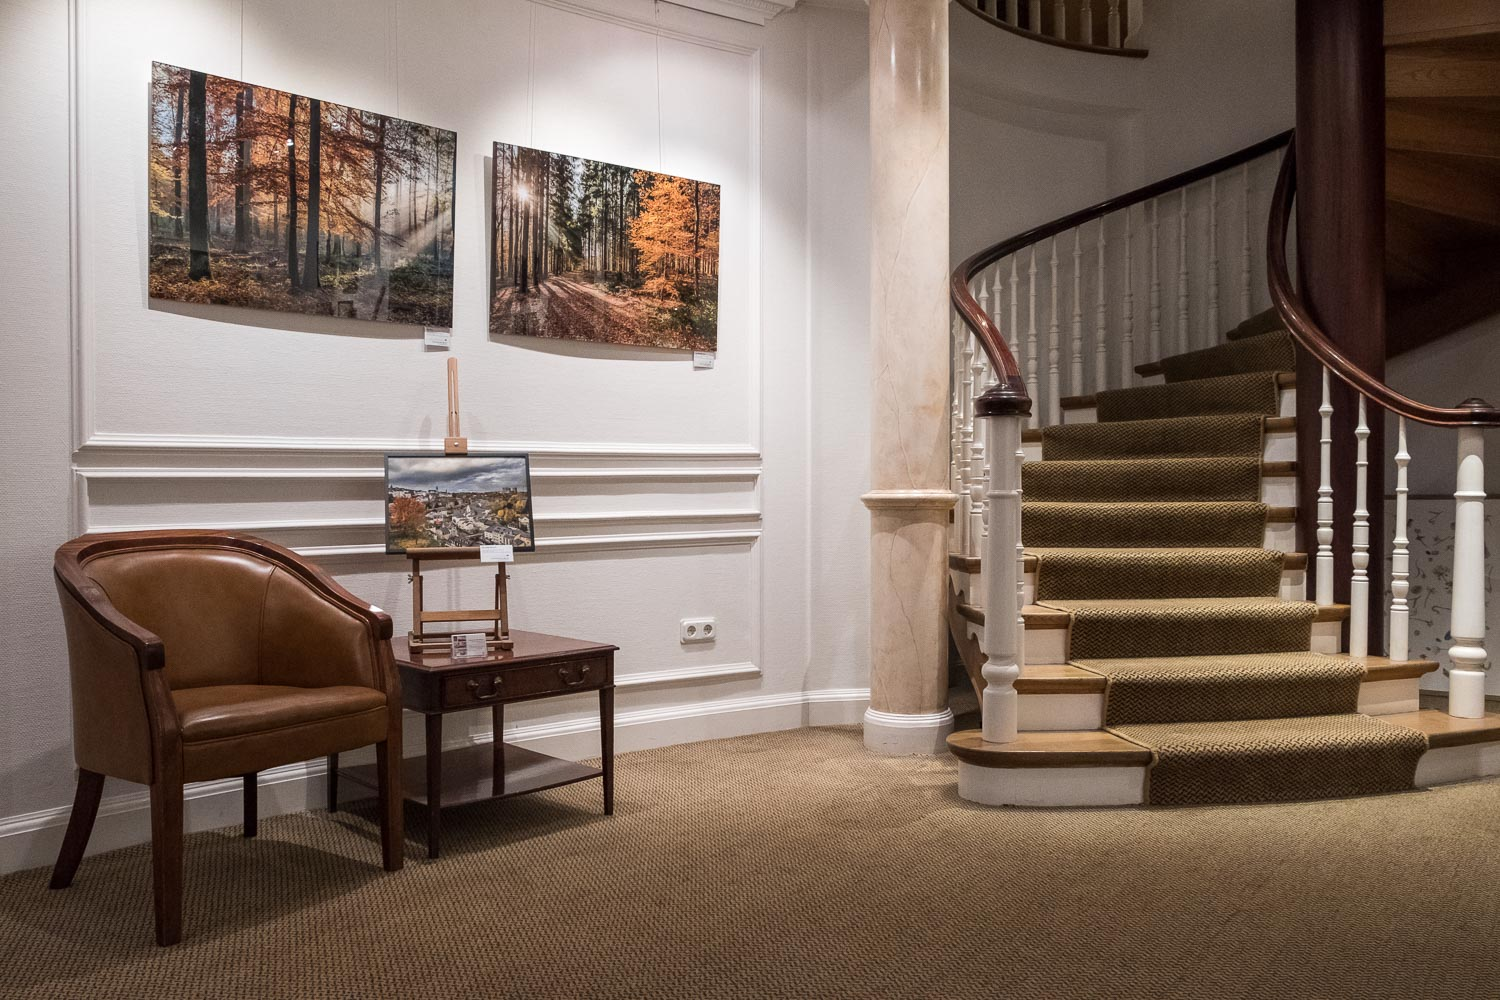 Seasons of Luxembourg by Christophe Van Biesen - Exhibition at the Cercle Munster - Photography by Christophe Van Biesen